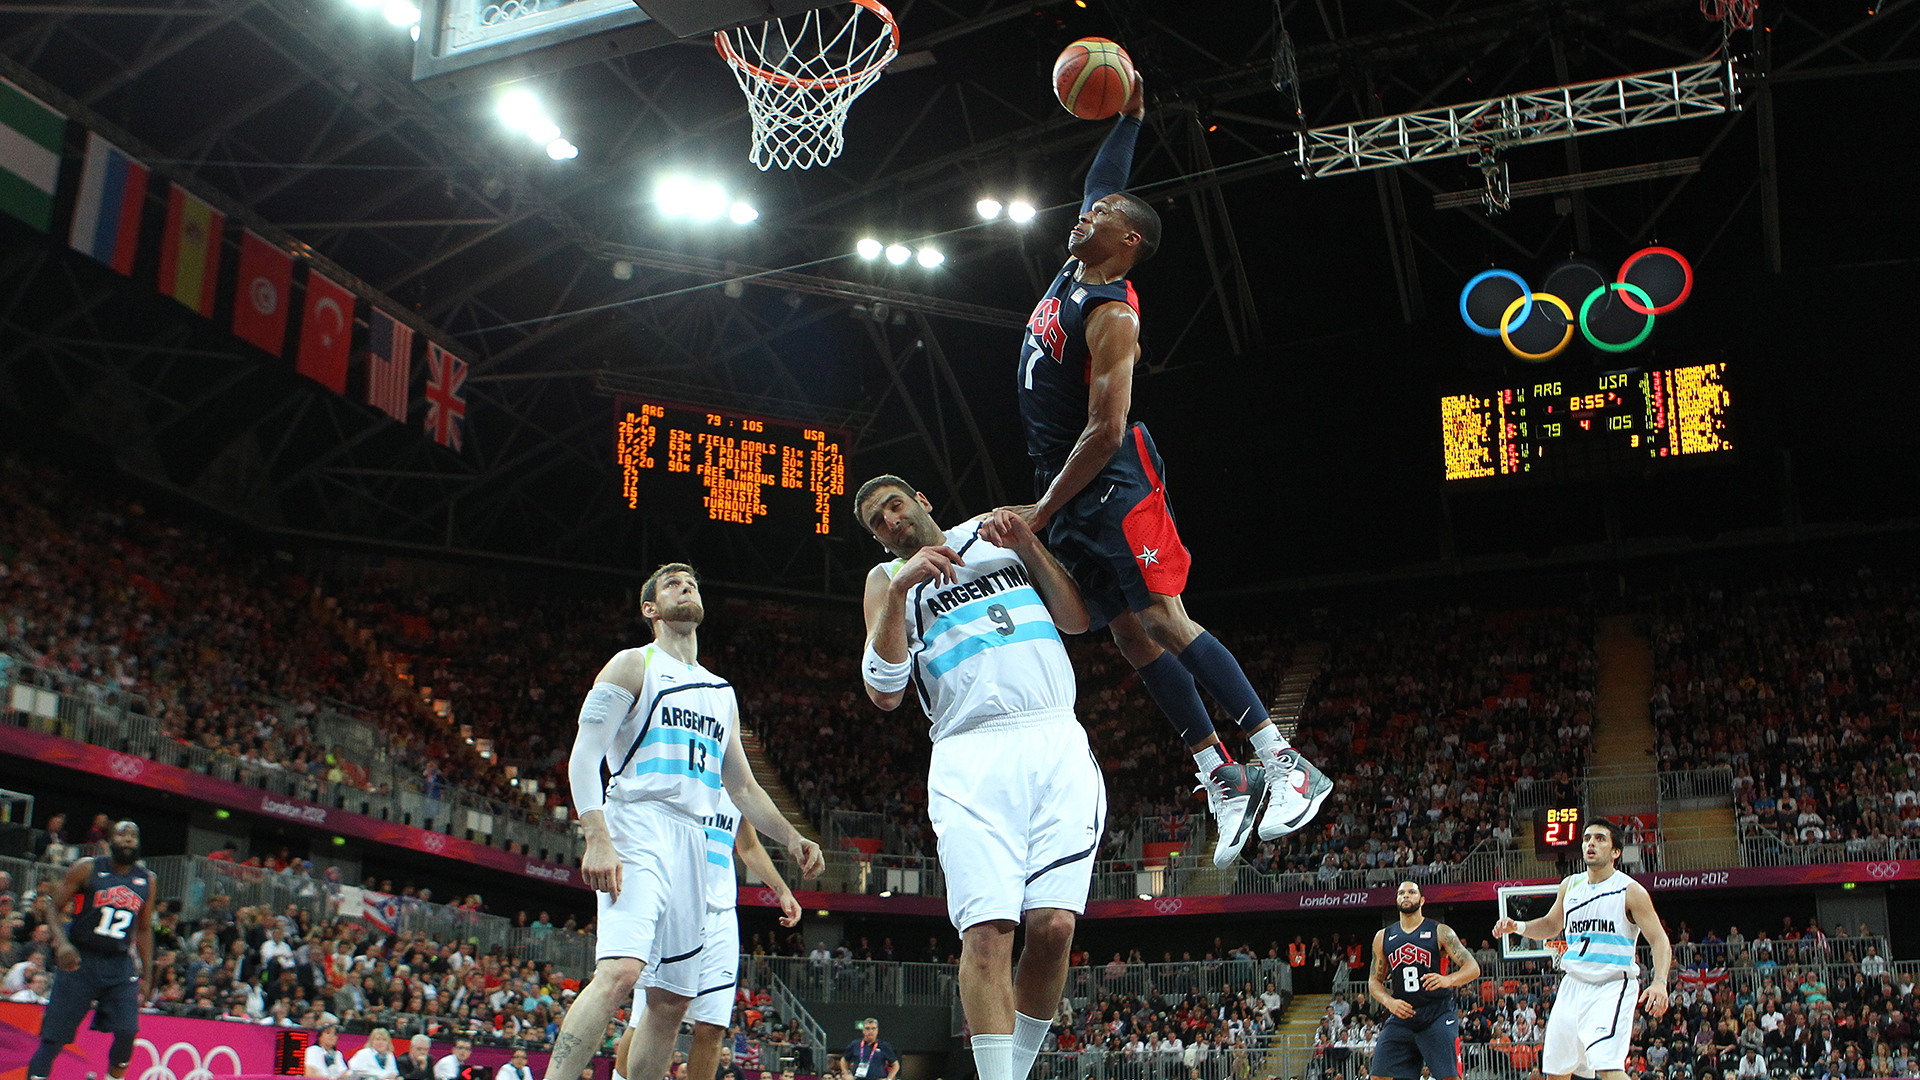 Russell Westbrook of the U.S. dunks over an Argentina player